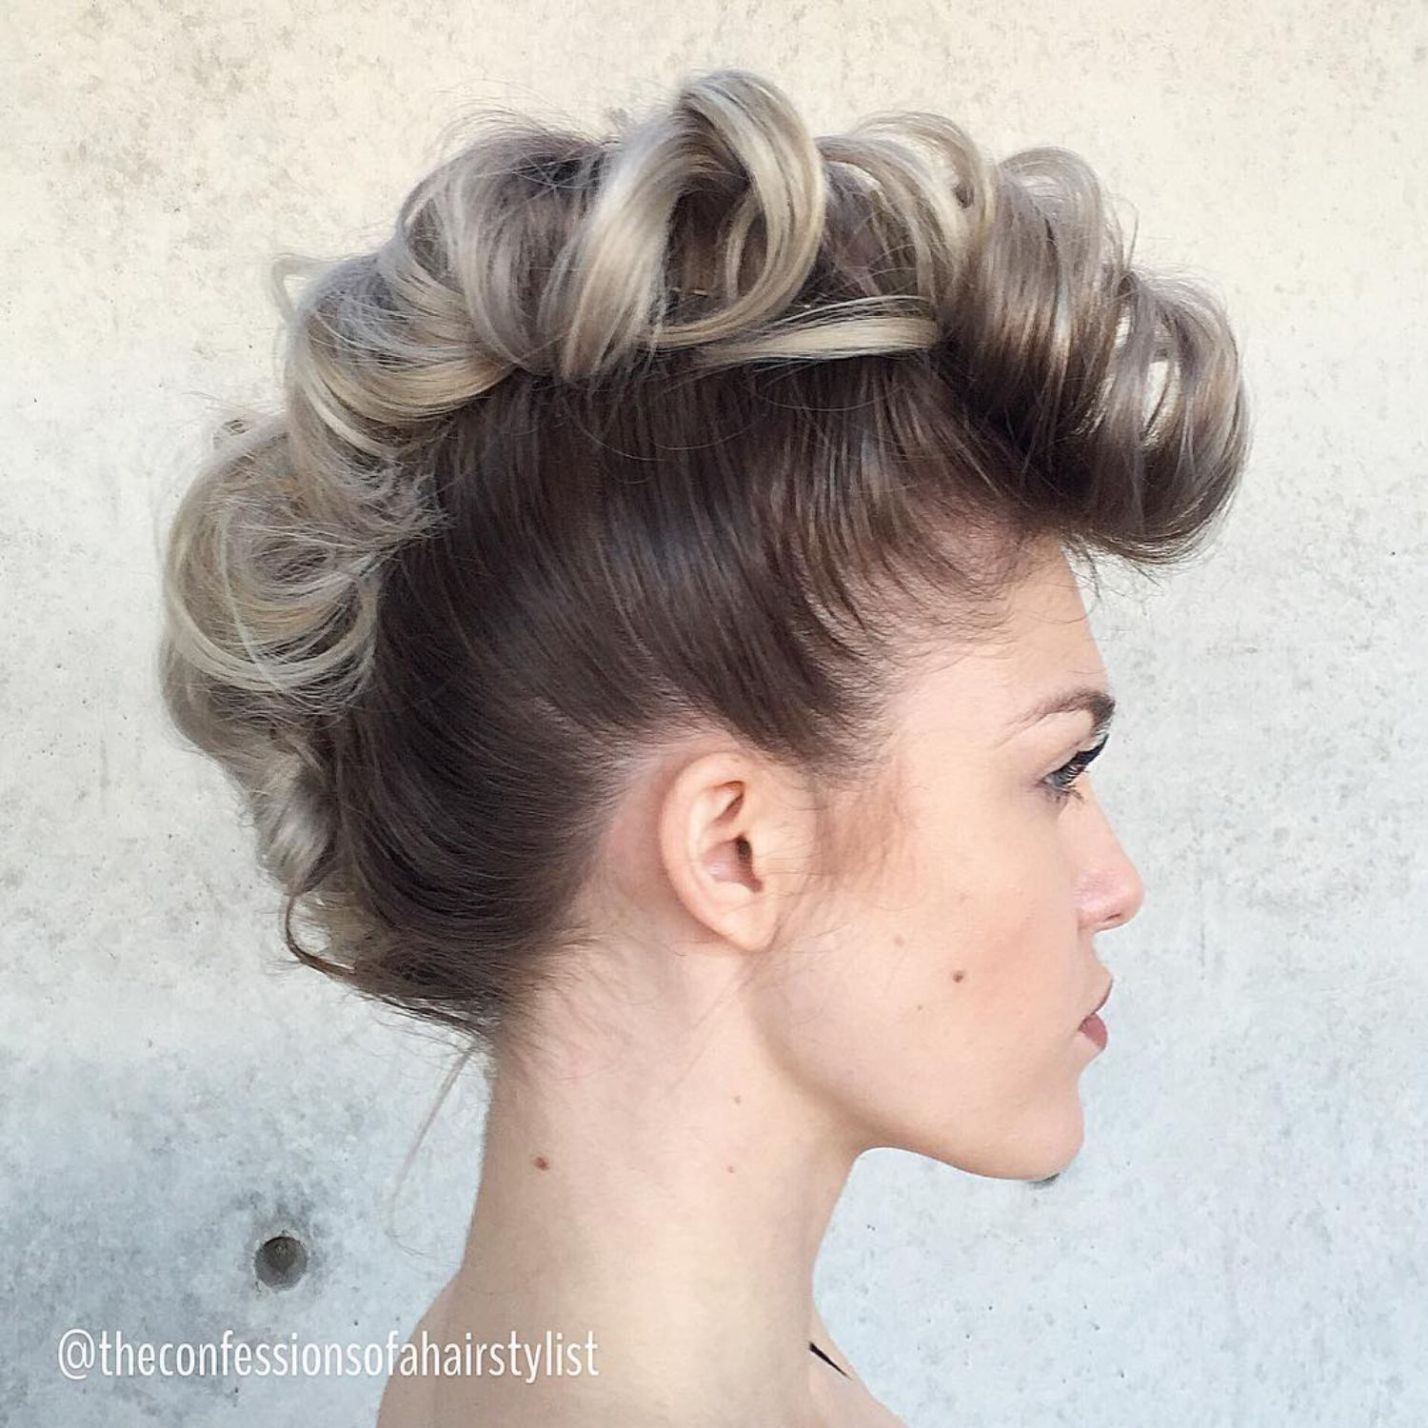 60 updos for thin hair that score maximum style point | hair